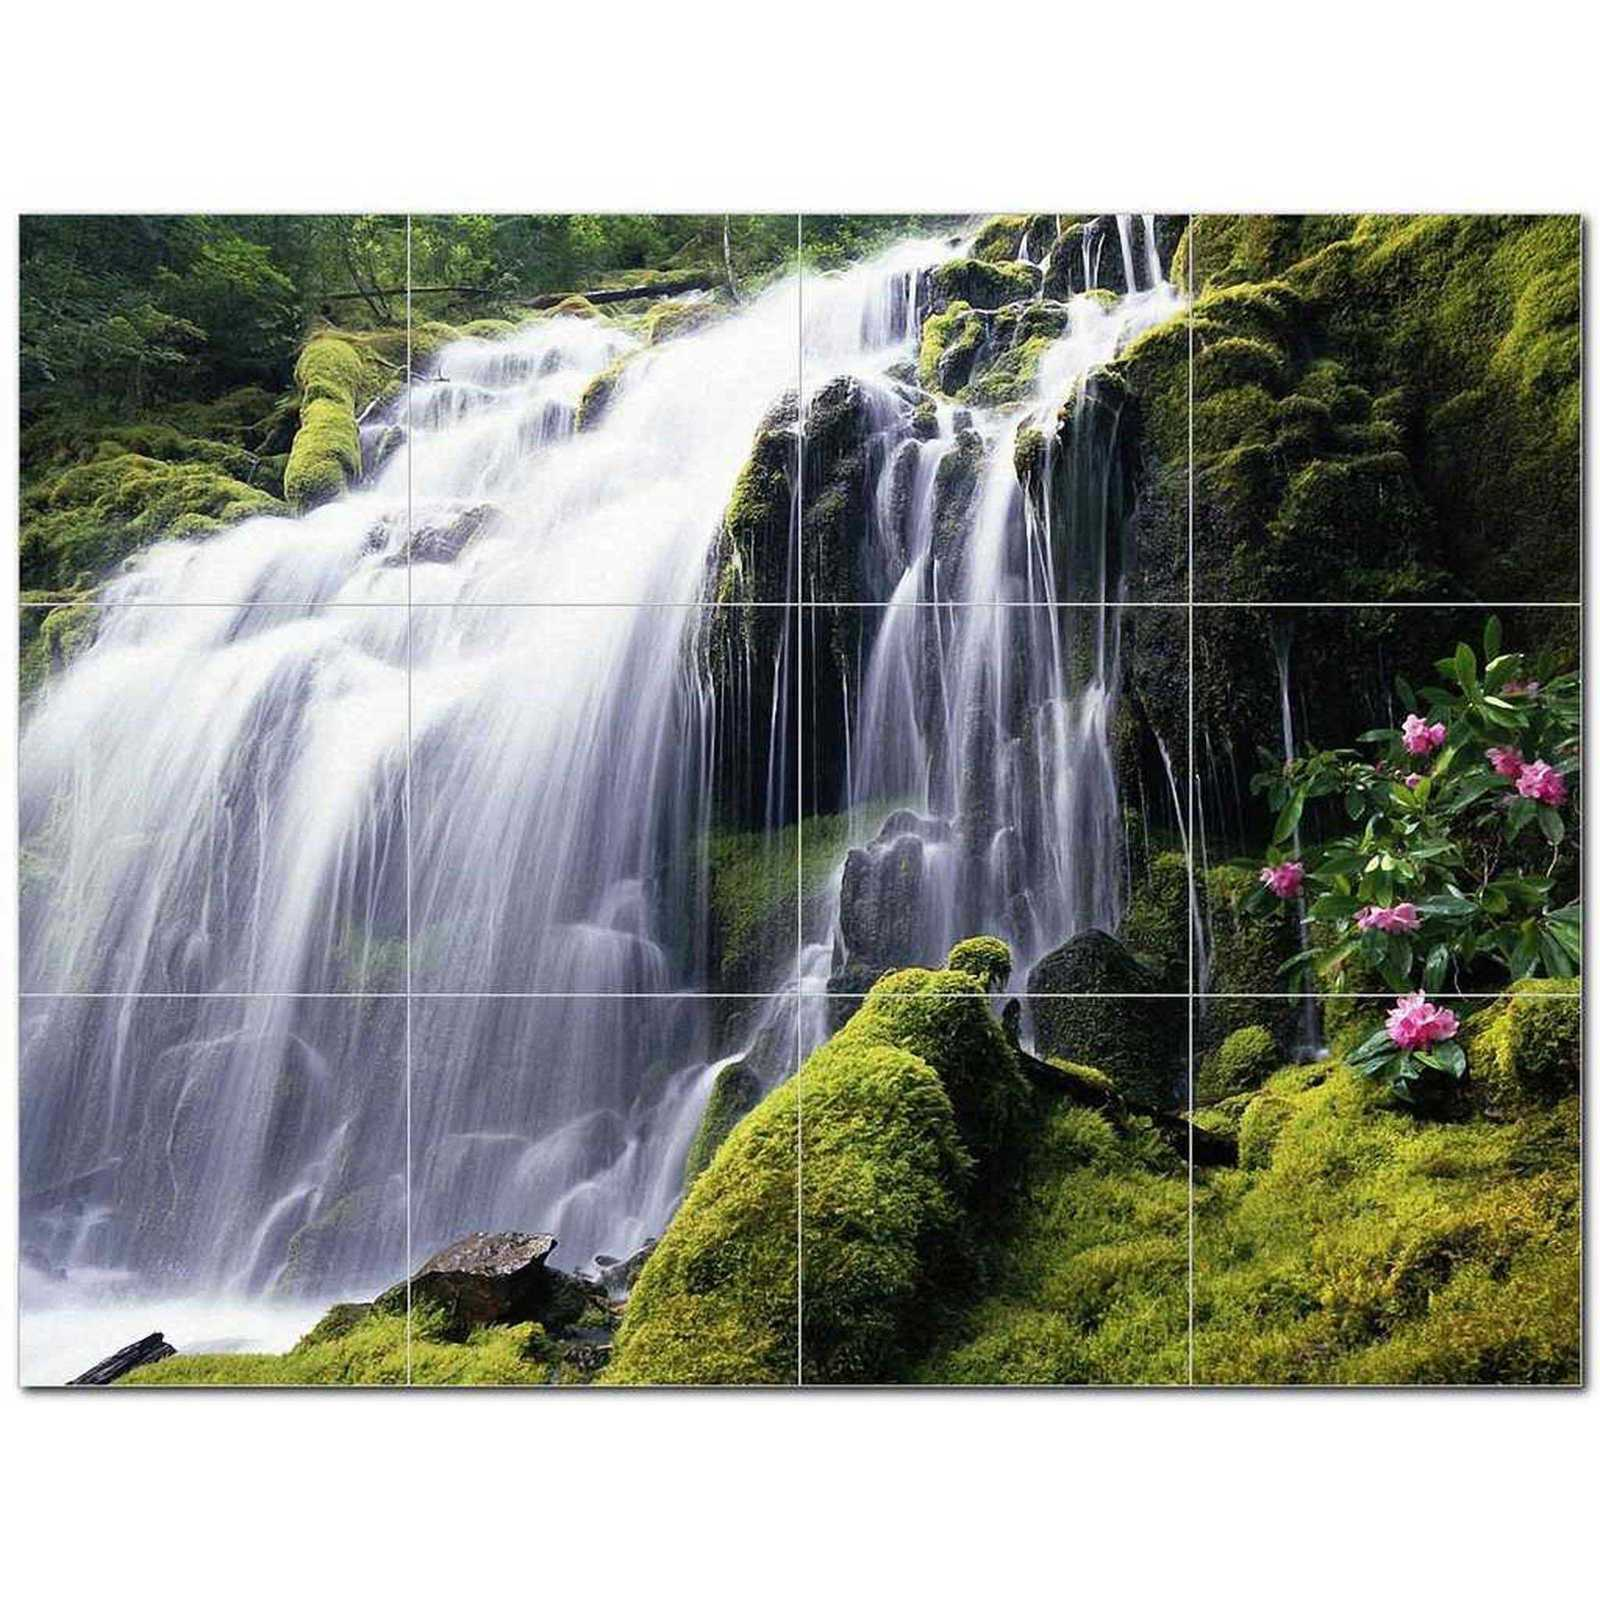 Primary image for Waterfall Photo Ceramic Tile Mural Kitchen Backsplash Bathroom Shower BAZ406104